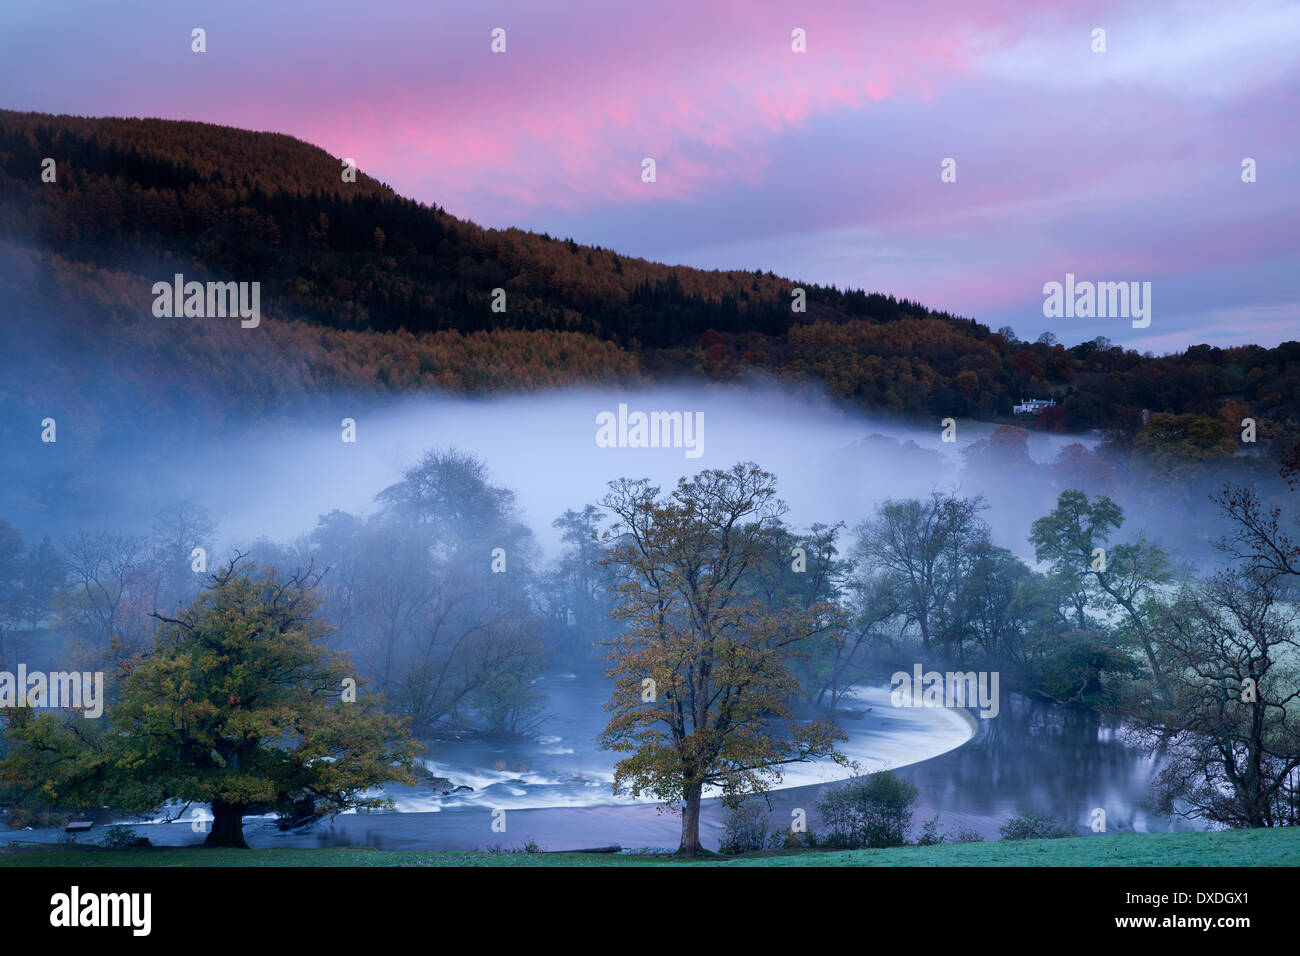 Autumn colours and mist in the Dee Valley (Dyffryn Dyfrdwy) at Horseshoe Falls near Llangollen, Denbighshire, Wales Stock Photo